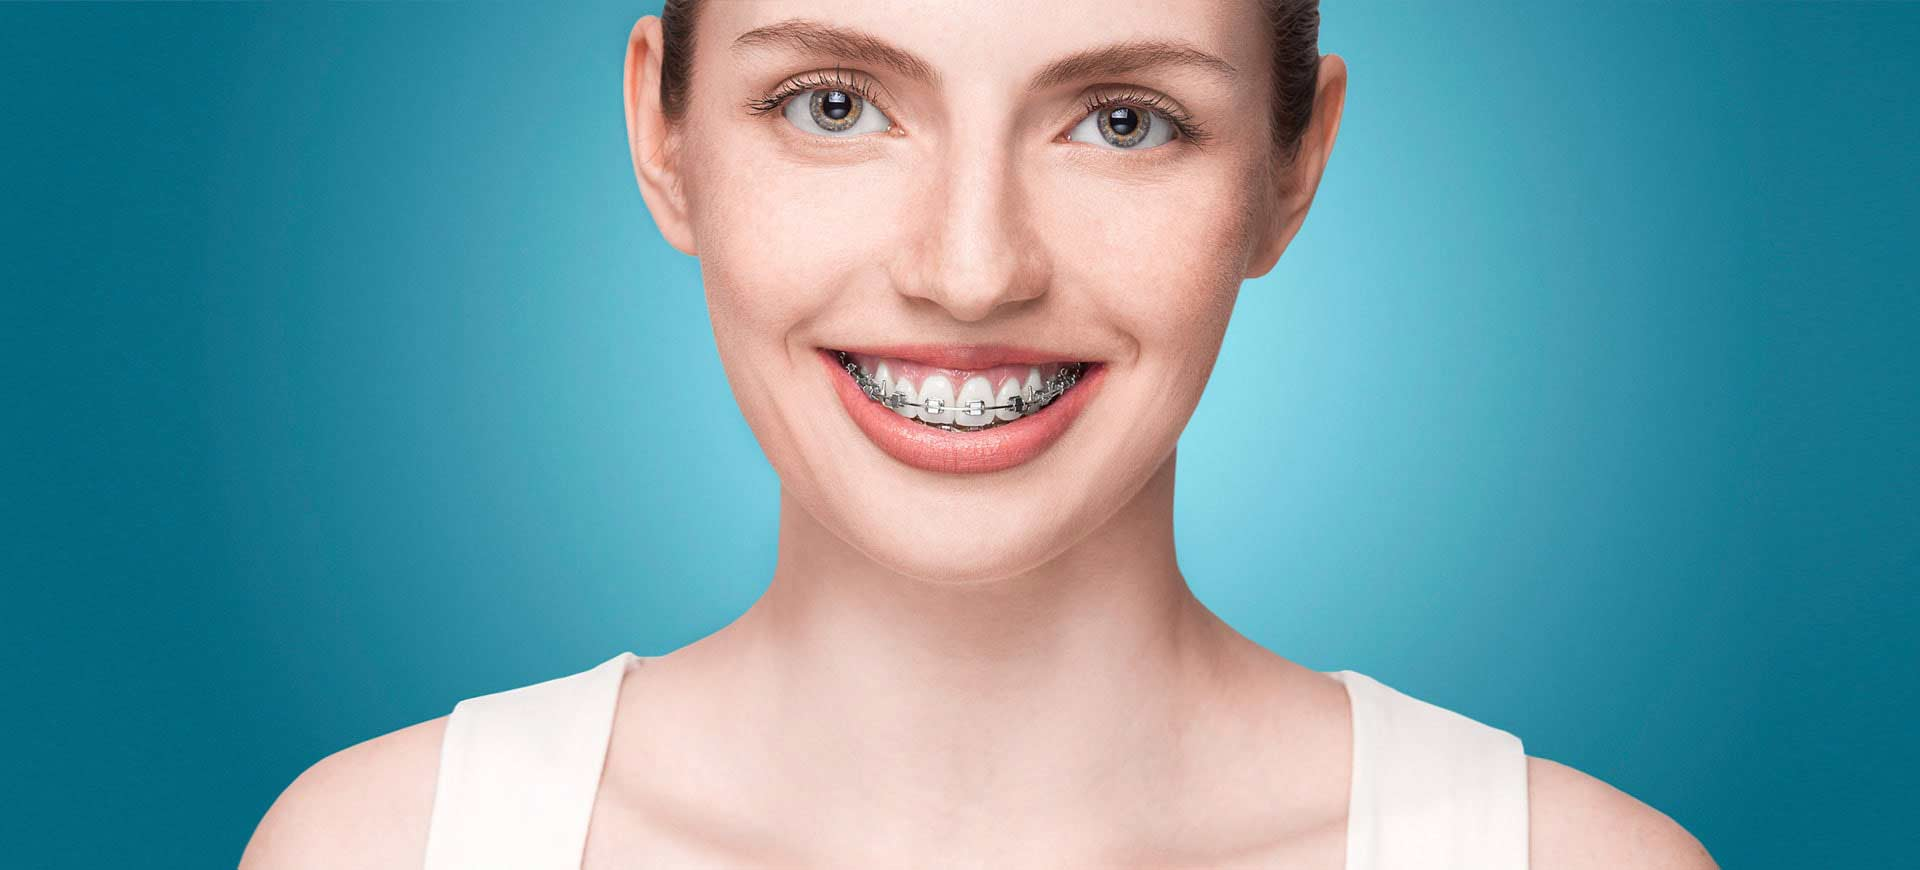 Woman smiling with metal braces